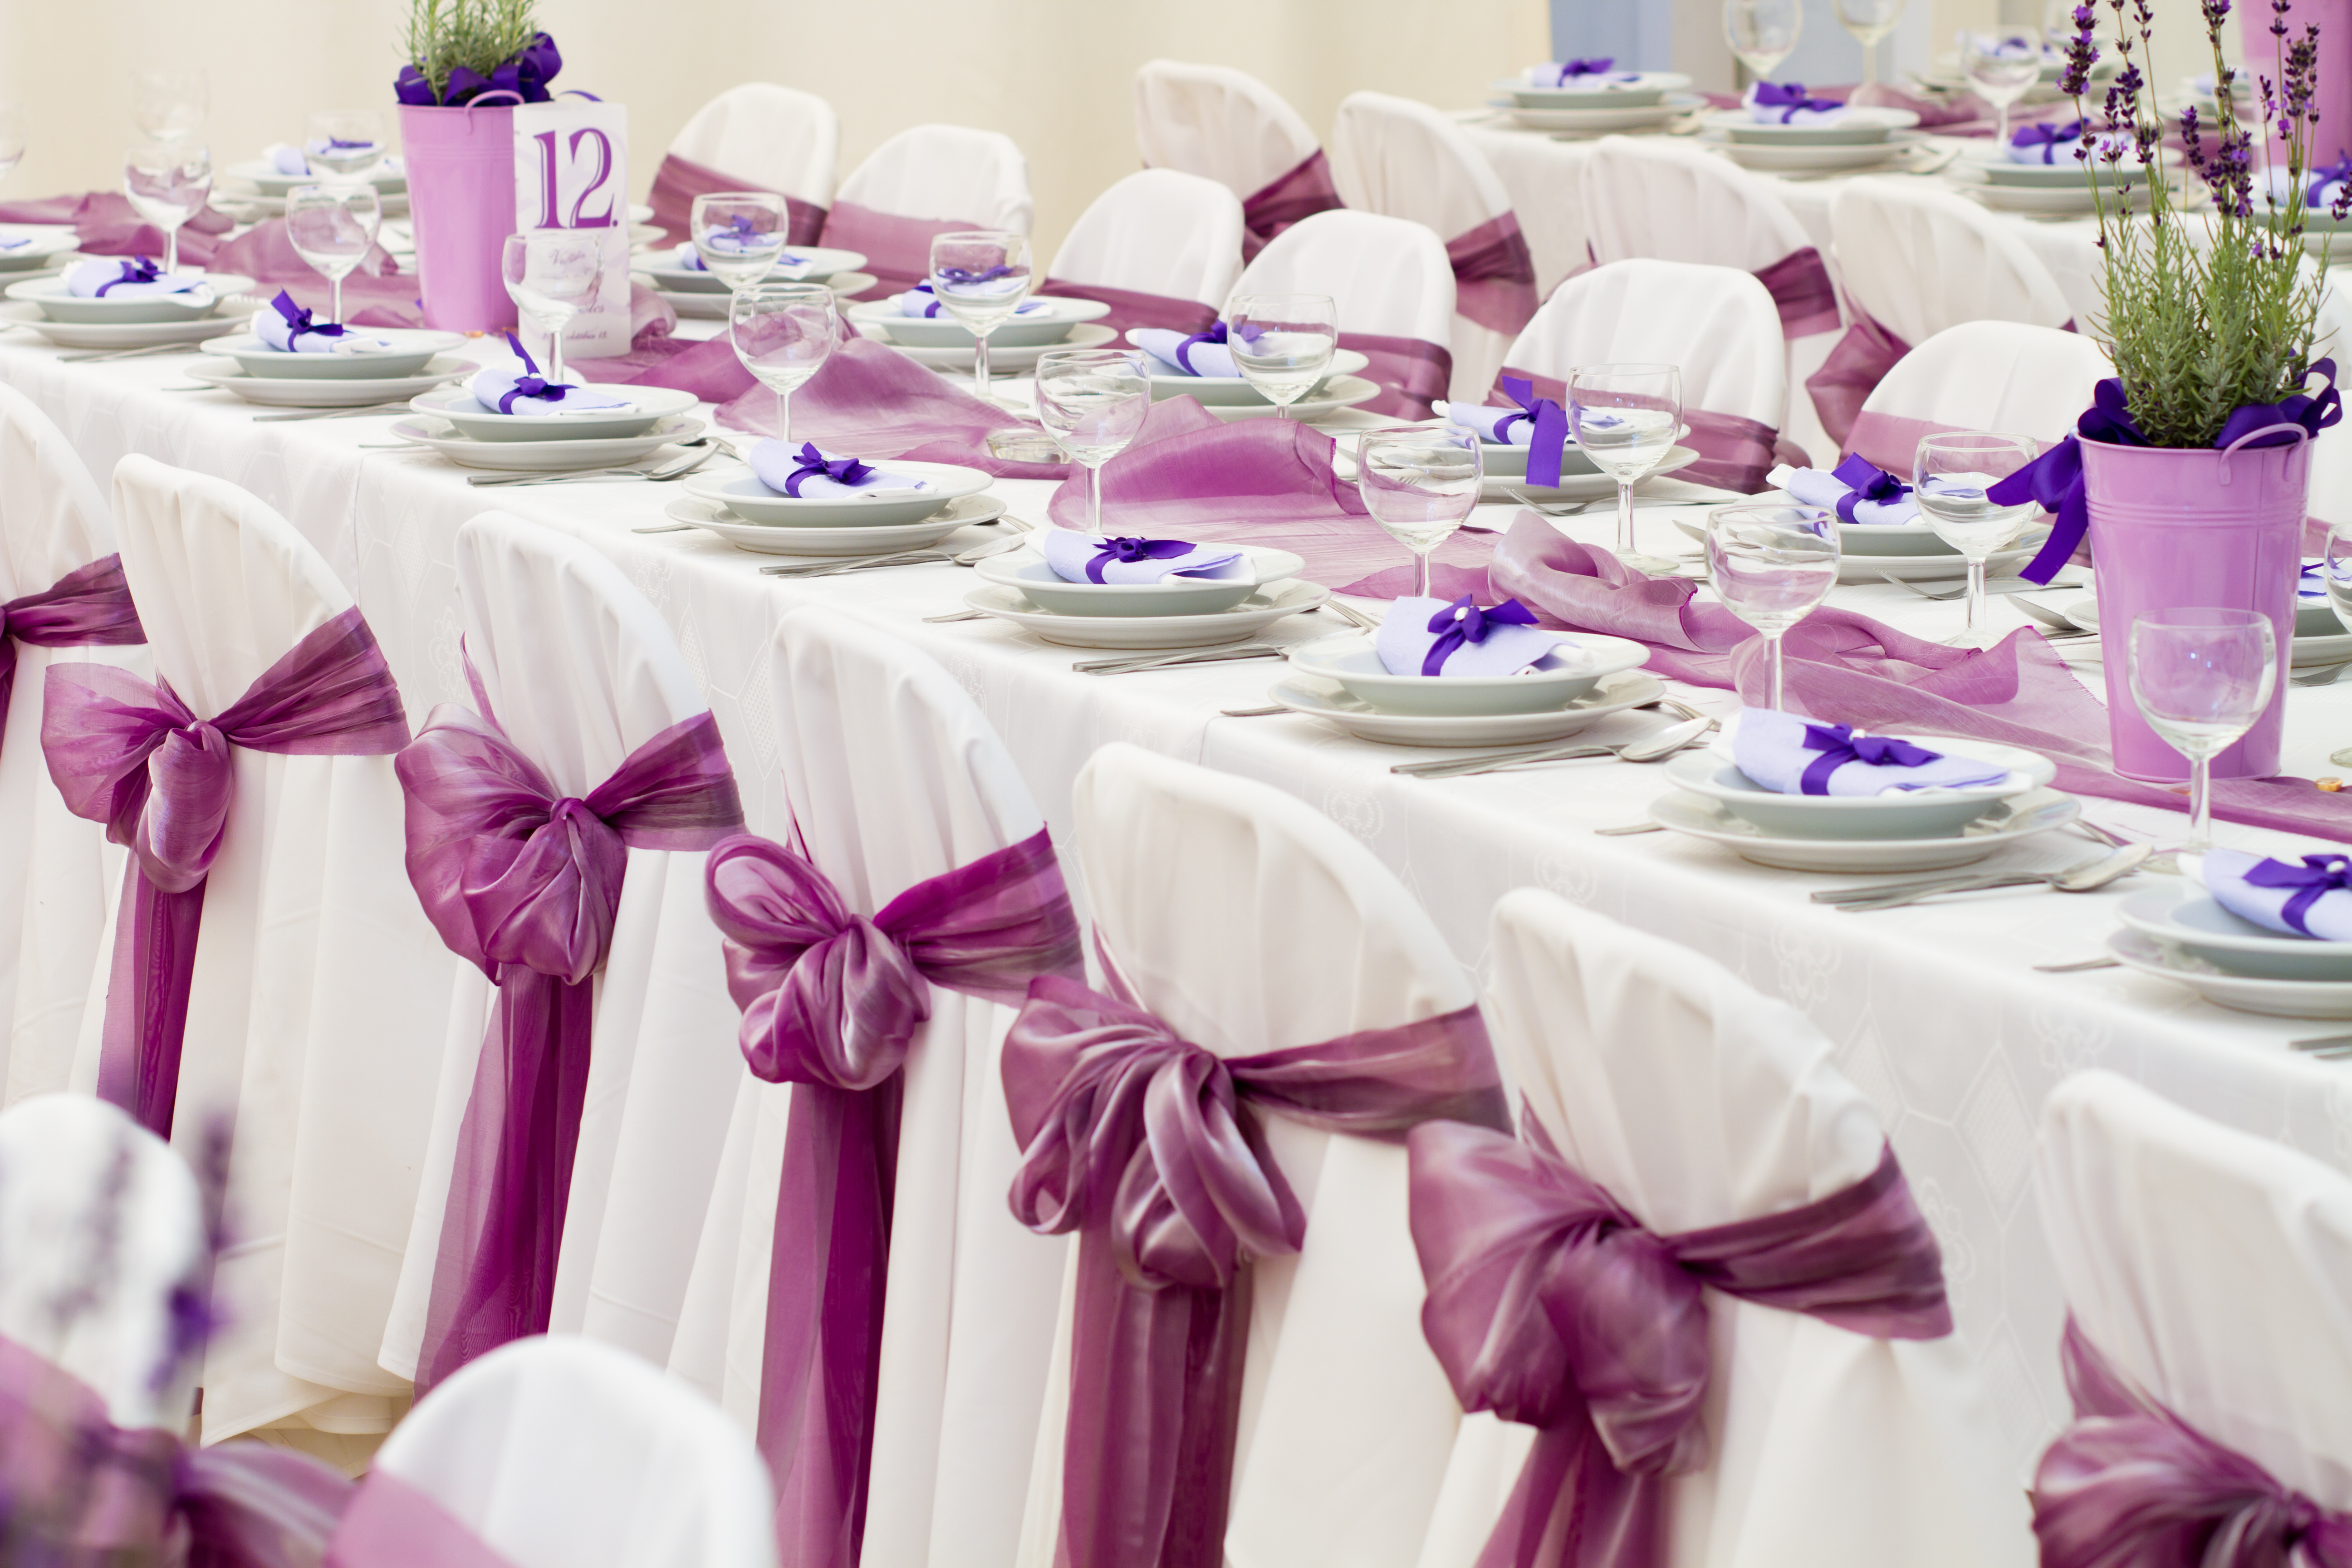 backdrop rents event rentals aaa services wedding party linen joslyn table events